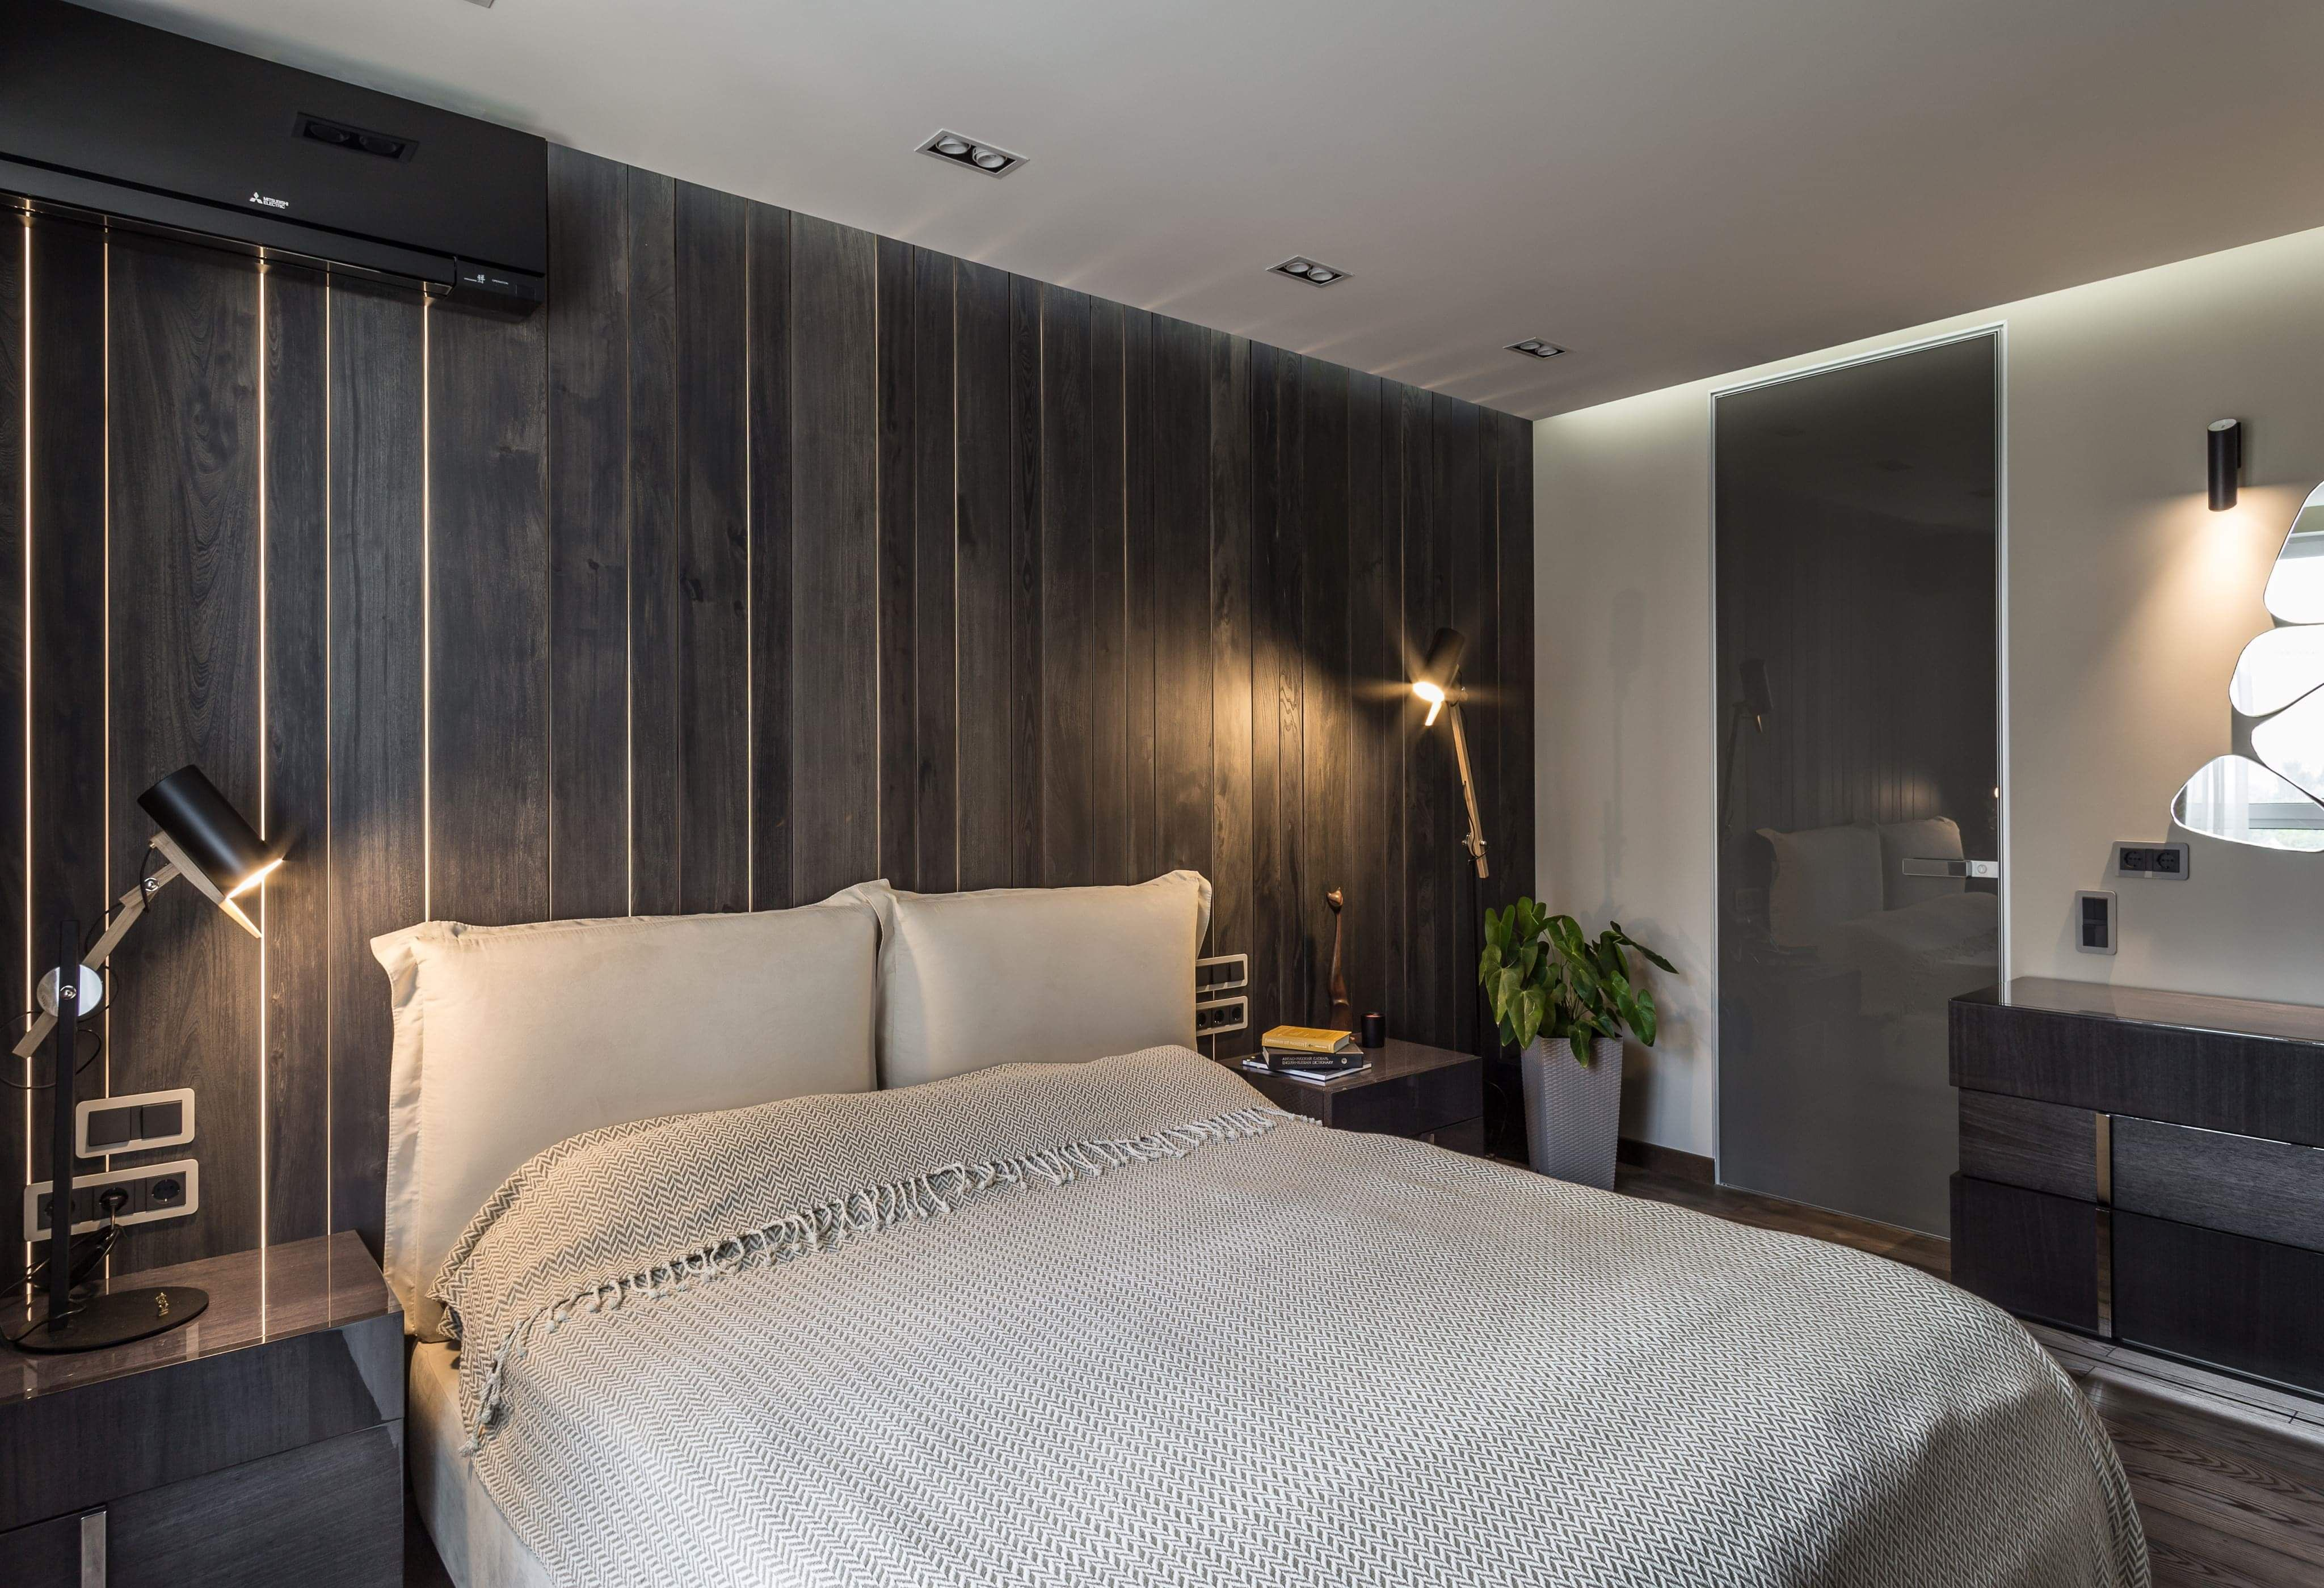 Wooden Panel Fence With Lighting In Bedroom Interior Wooden Wall Panels Wall Panels Bedroom One Bedroom Apartment